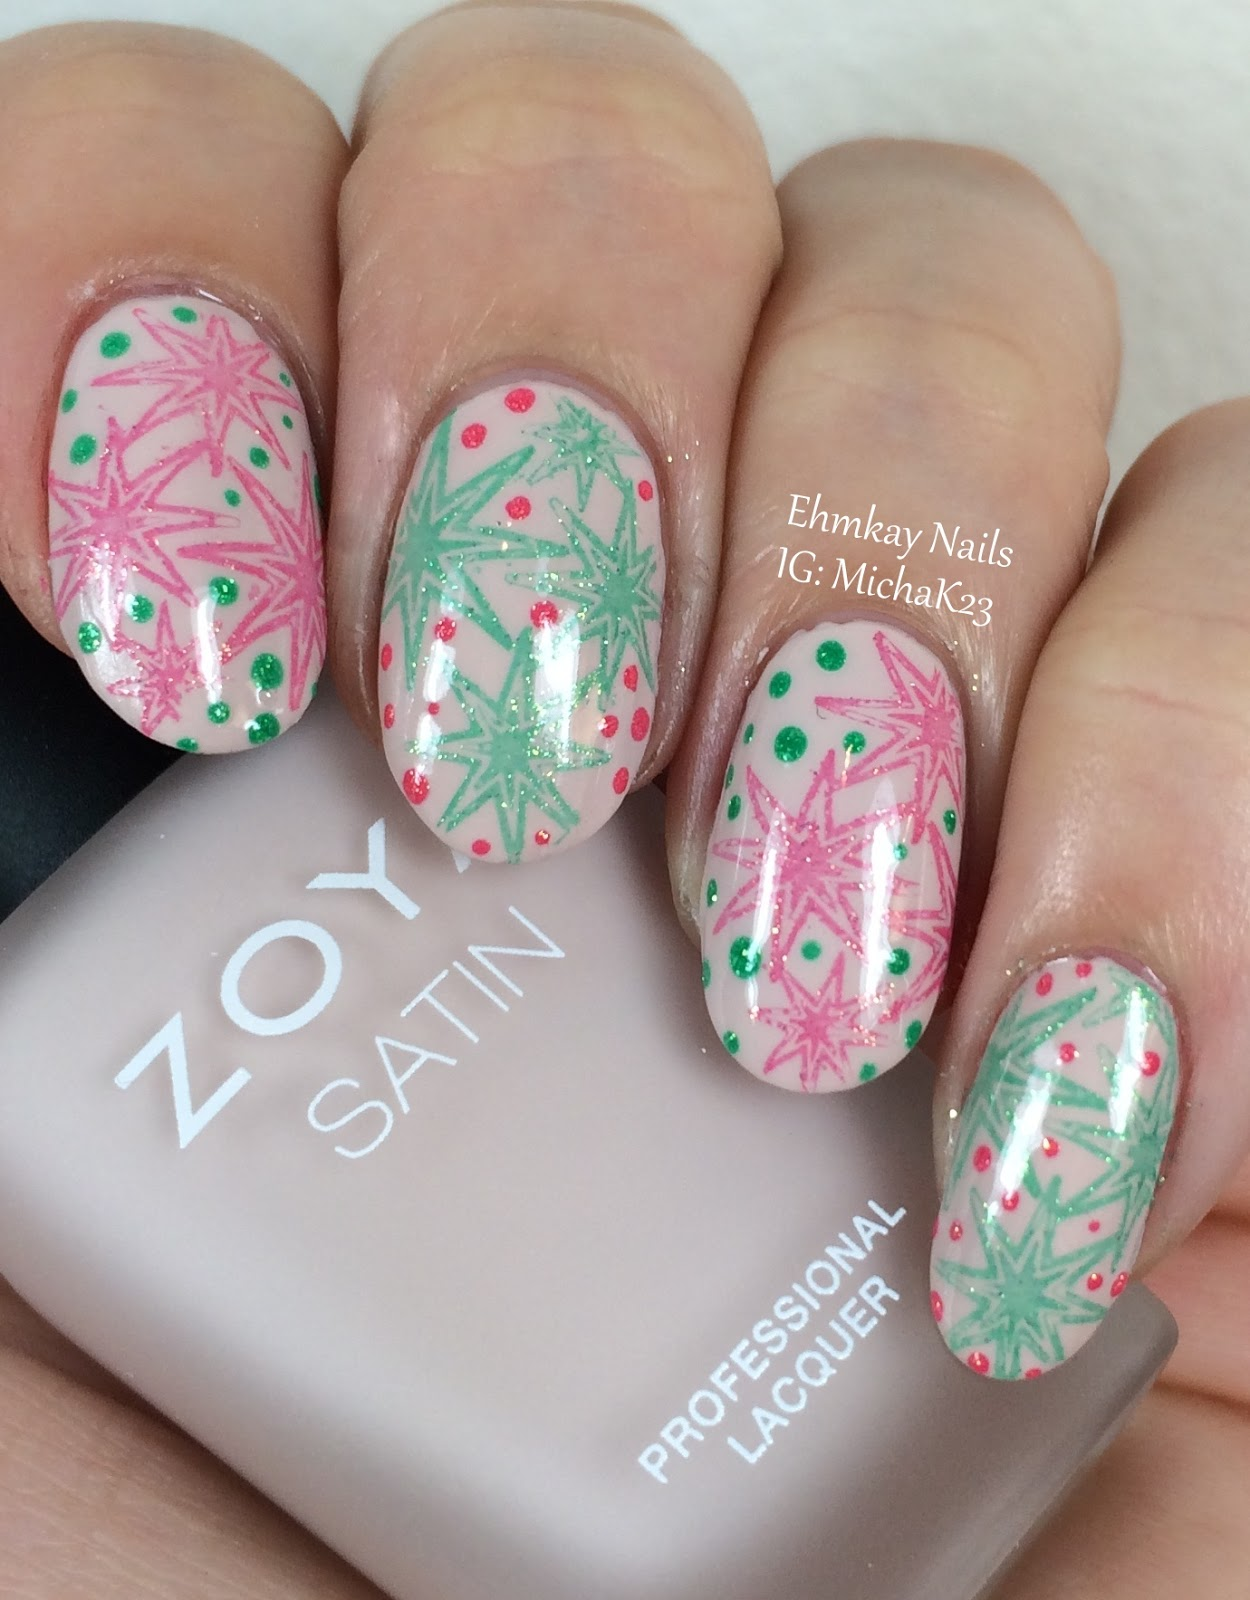 35 Nail Design Ideas For The Latest Autumn Winter Trends: Ehmkay Nails: 35th Anniversary Nails With Coral And Jade